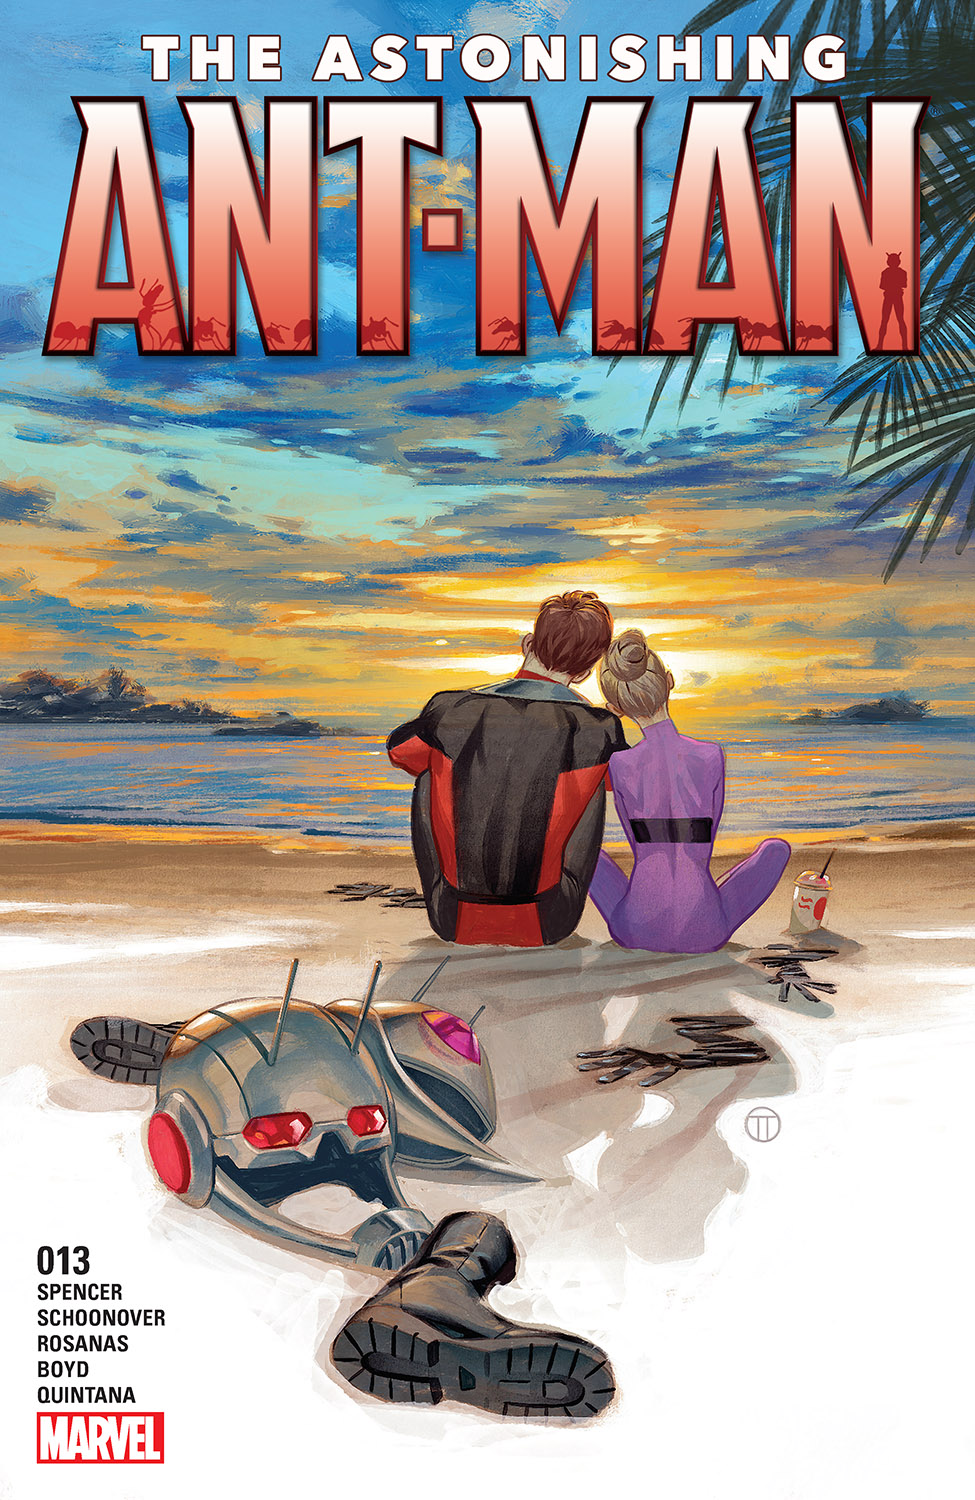 The Astonishing Ant-Man (2015) #13